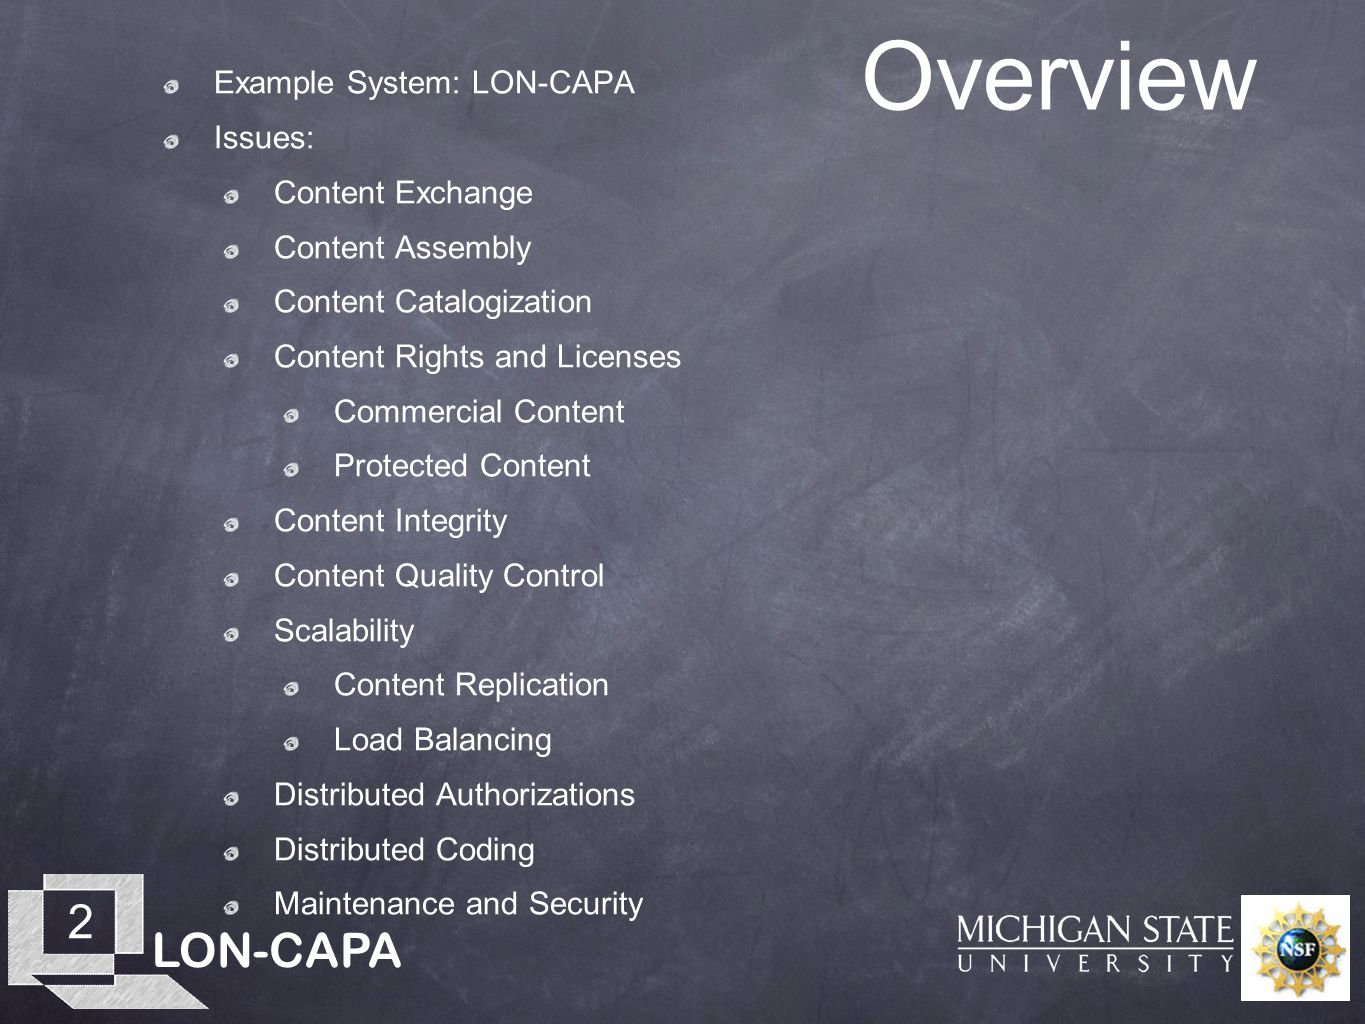 LON-CAPA 2 Overview Example System: LON-CAPA Issues: Content Exchange Content Assembly Content Catalogization Content Rights and Licenses Commercial Content Protected Content Content Integrity Content Quality Control Scalability Content Replication Load Balancing Distributed Authorizations Distributed Coding Maintenance and Security